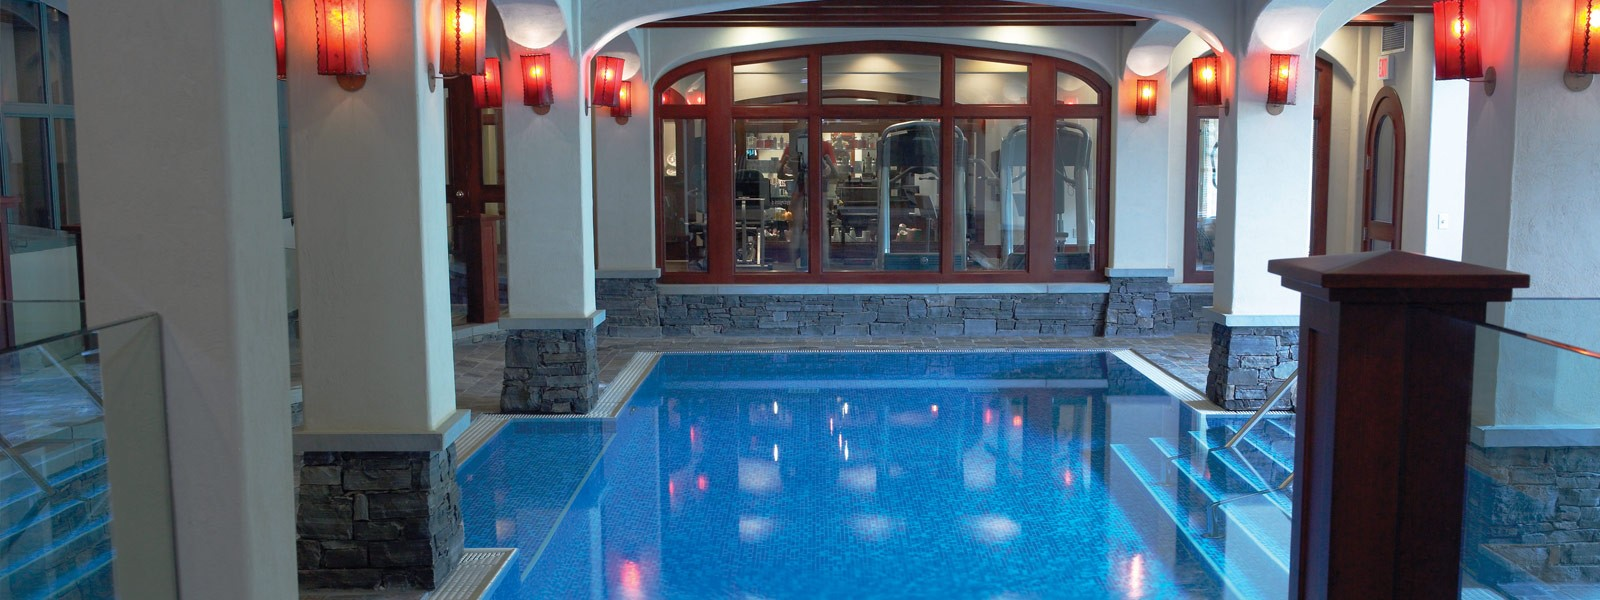 Lake Louise Hotel & Spa - Salt Water Pool | The Post Hotel